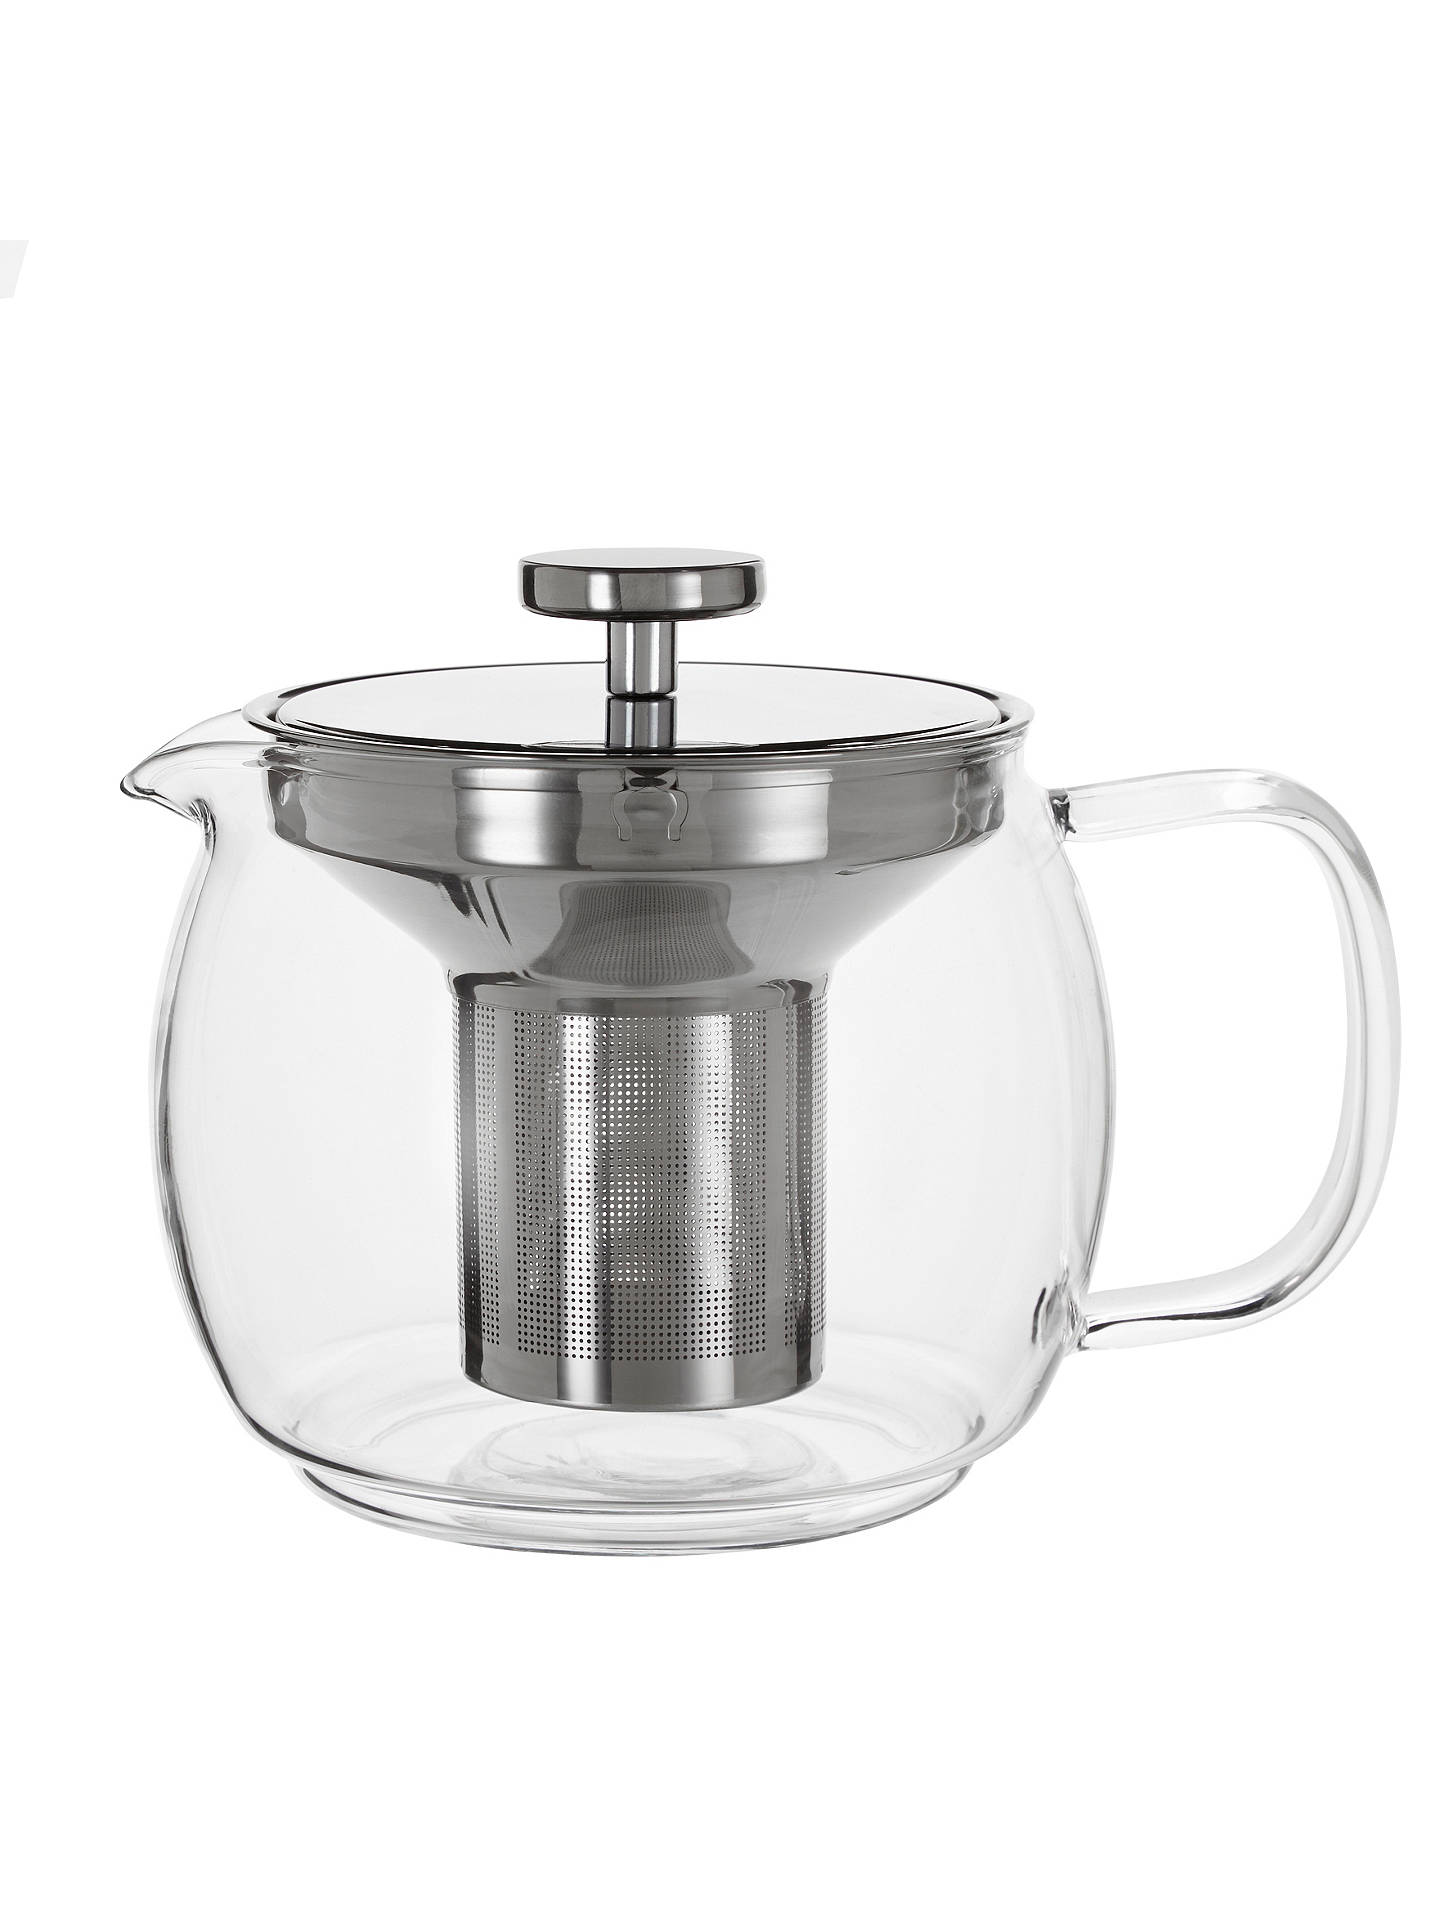 Buy House by John Lewis Glass Teapot with Infuser, 1.2L Online at johnlewis.com